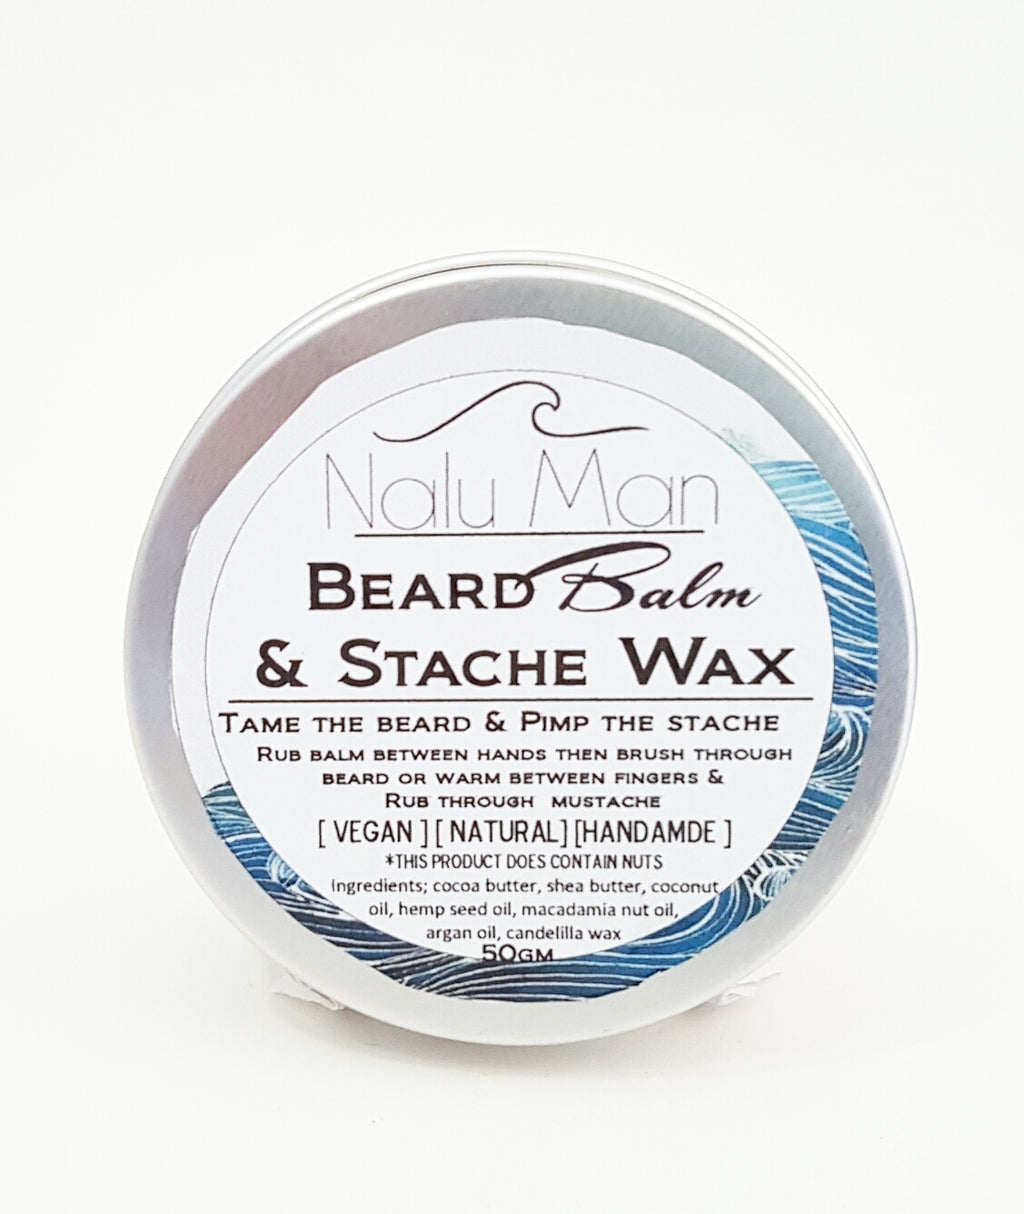 Beard Balm & Stache Wax